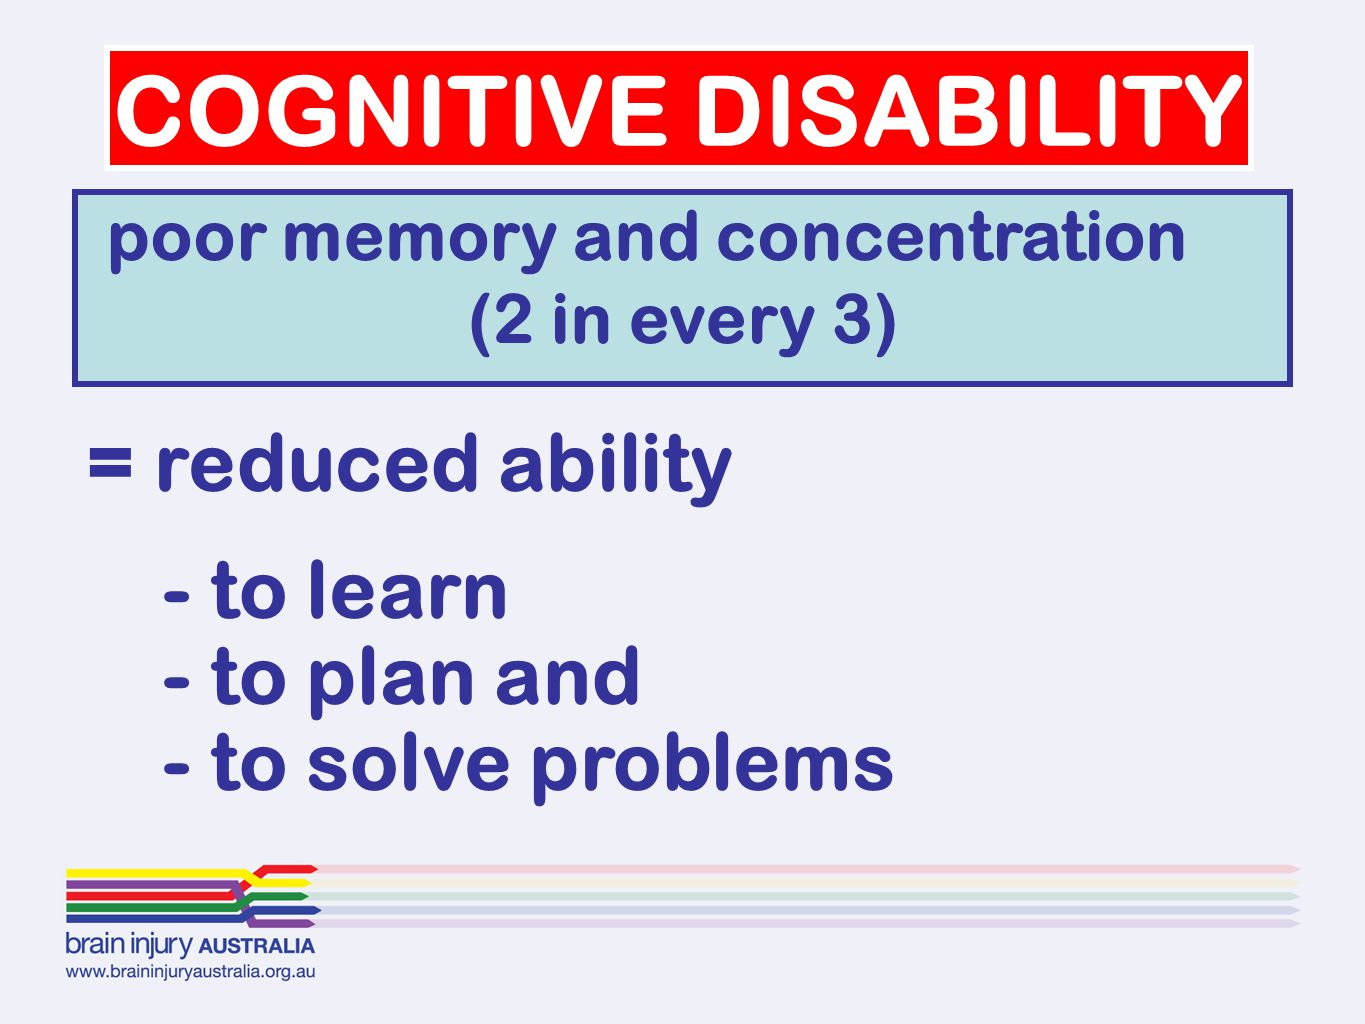 COGNITIVE DISABILITY = reduced ability - to learn - to plan and - to solve problems poor memory and concentration (2 in every 3)